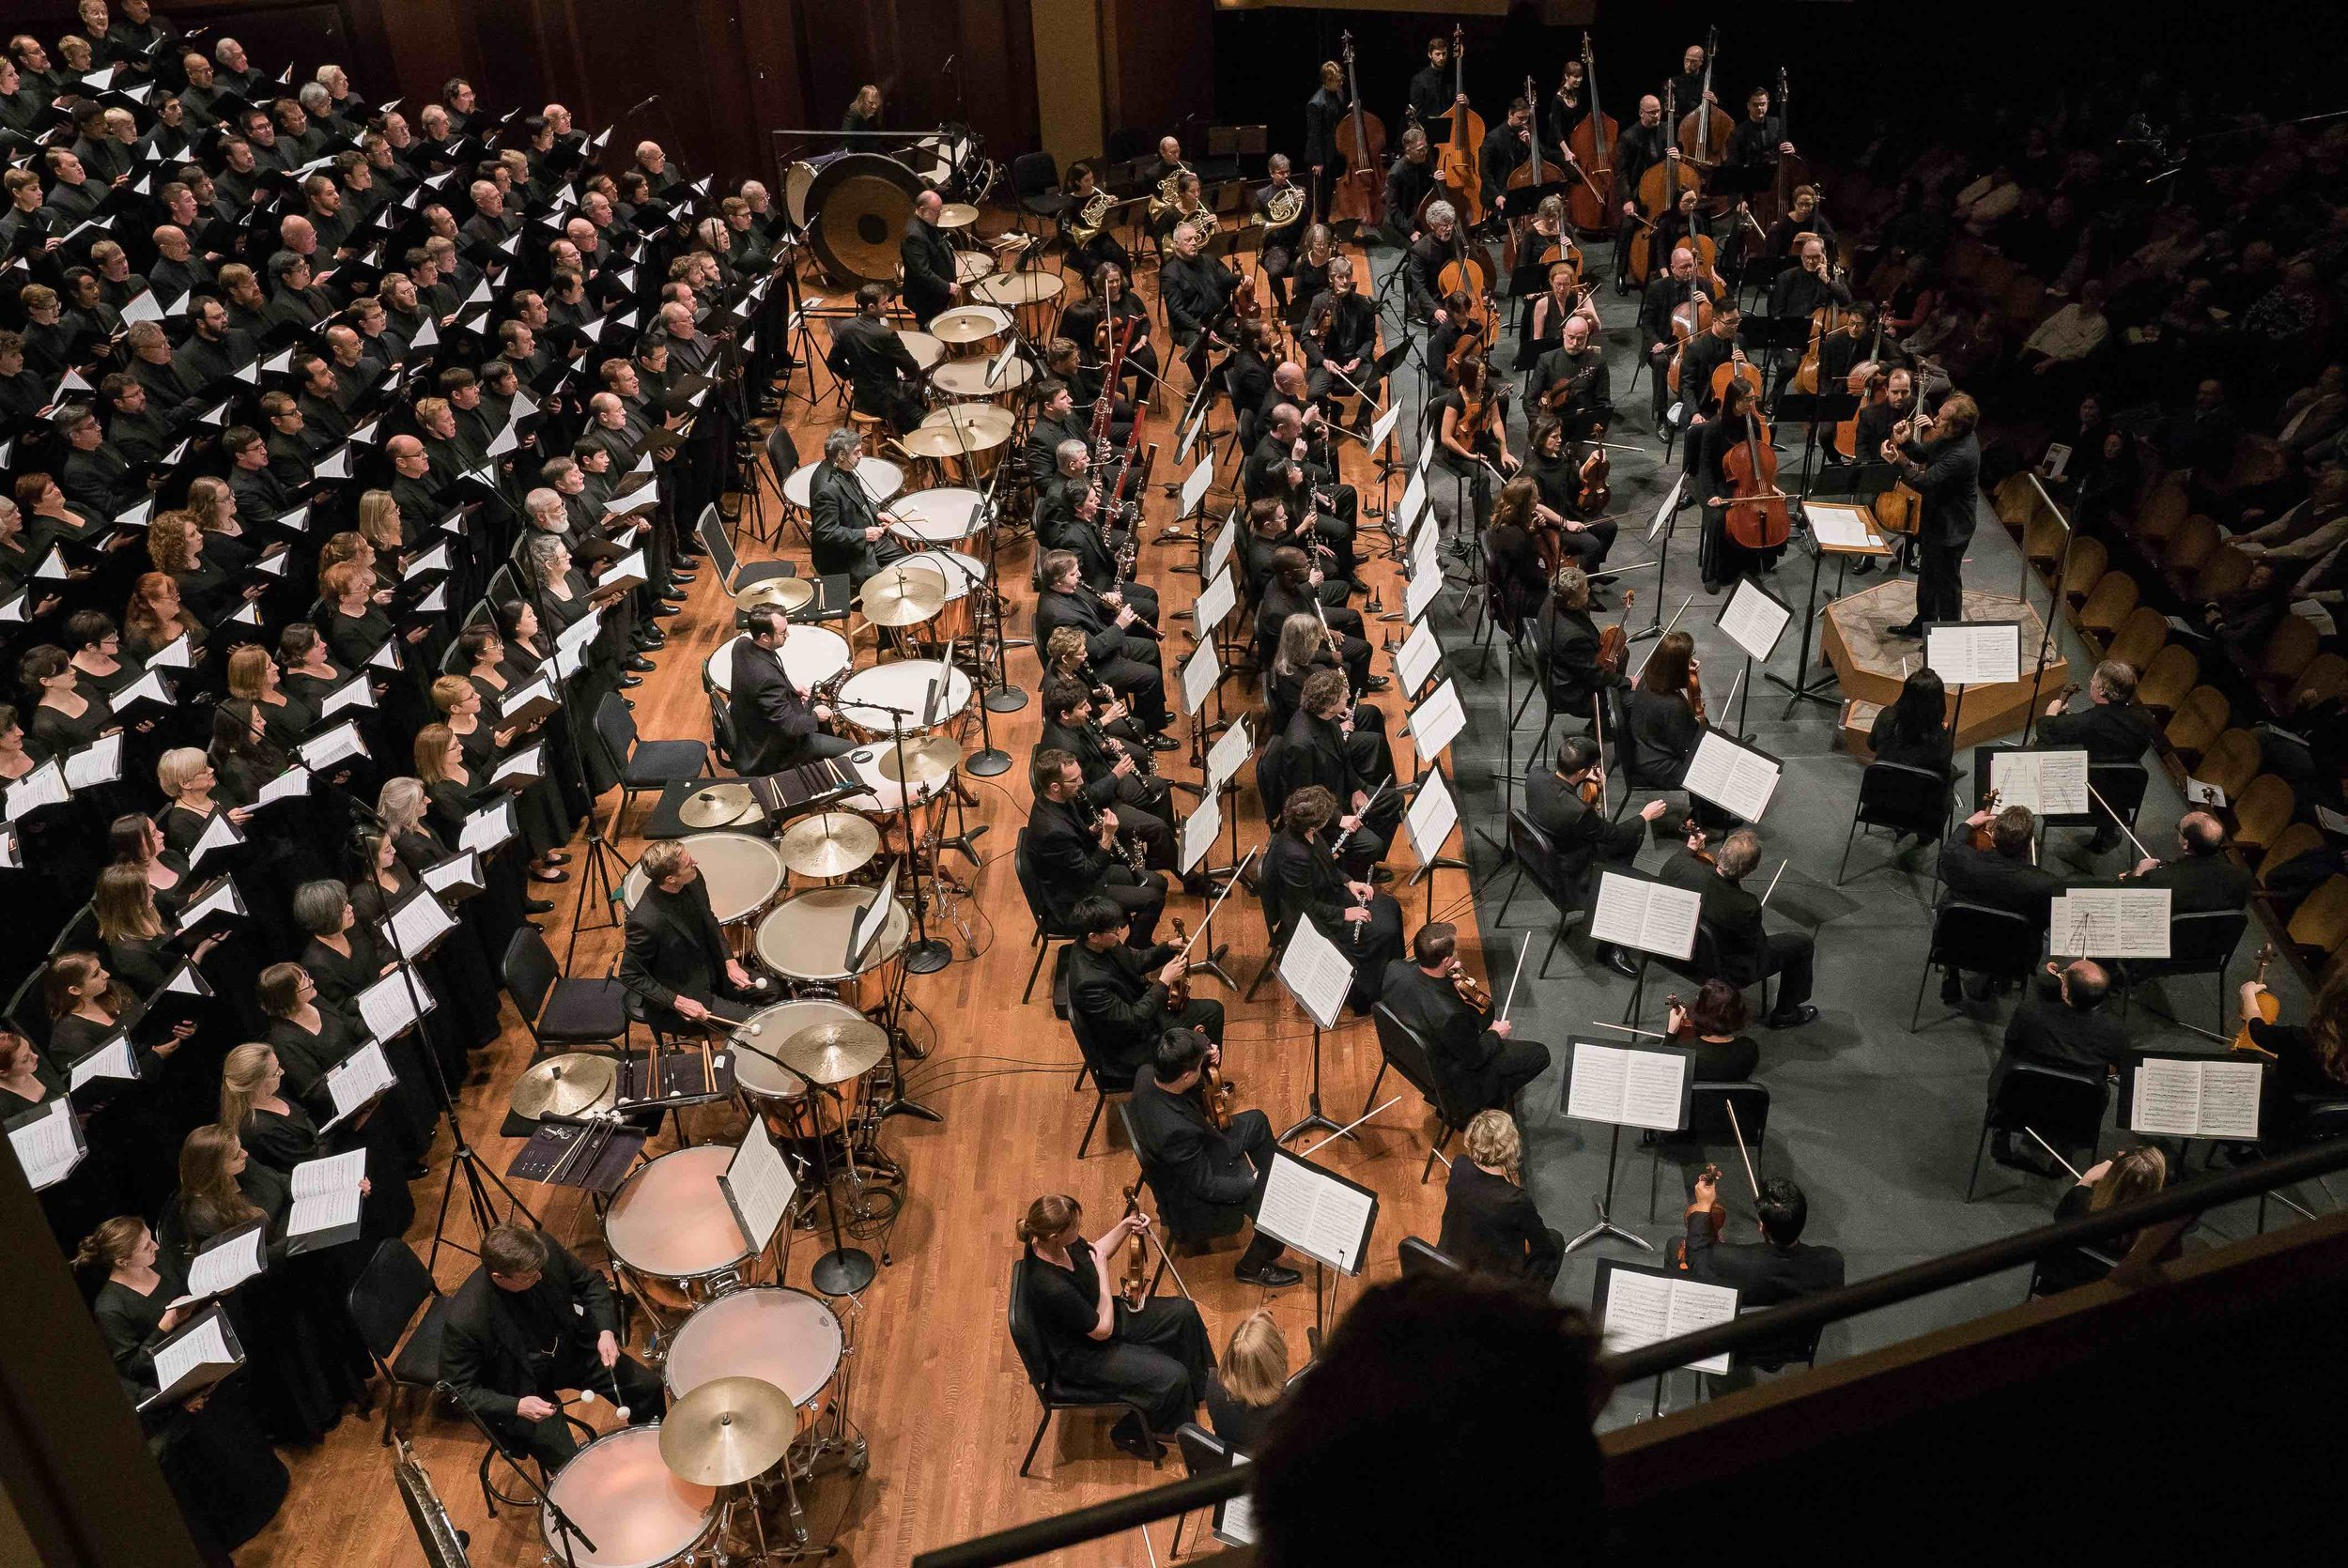 Eighteen timpani featured on stage at Benaroya Hall during the performance of Berlioz's Requiem. Photo by Brandon Patoc.